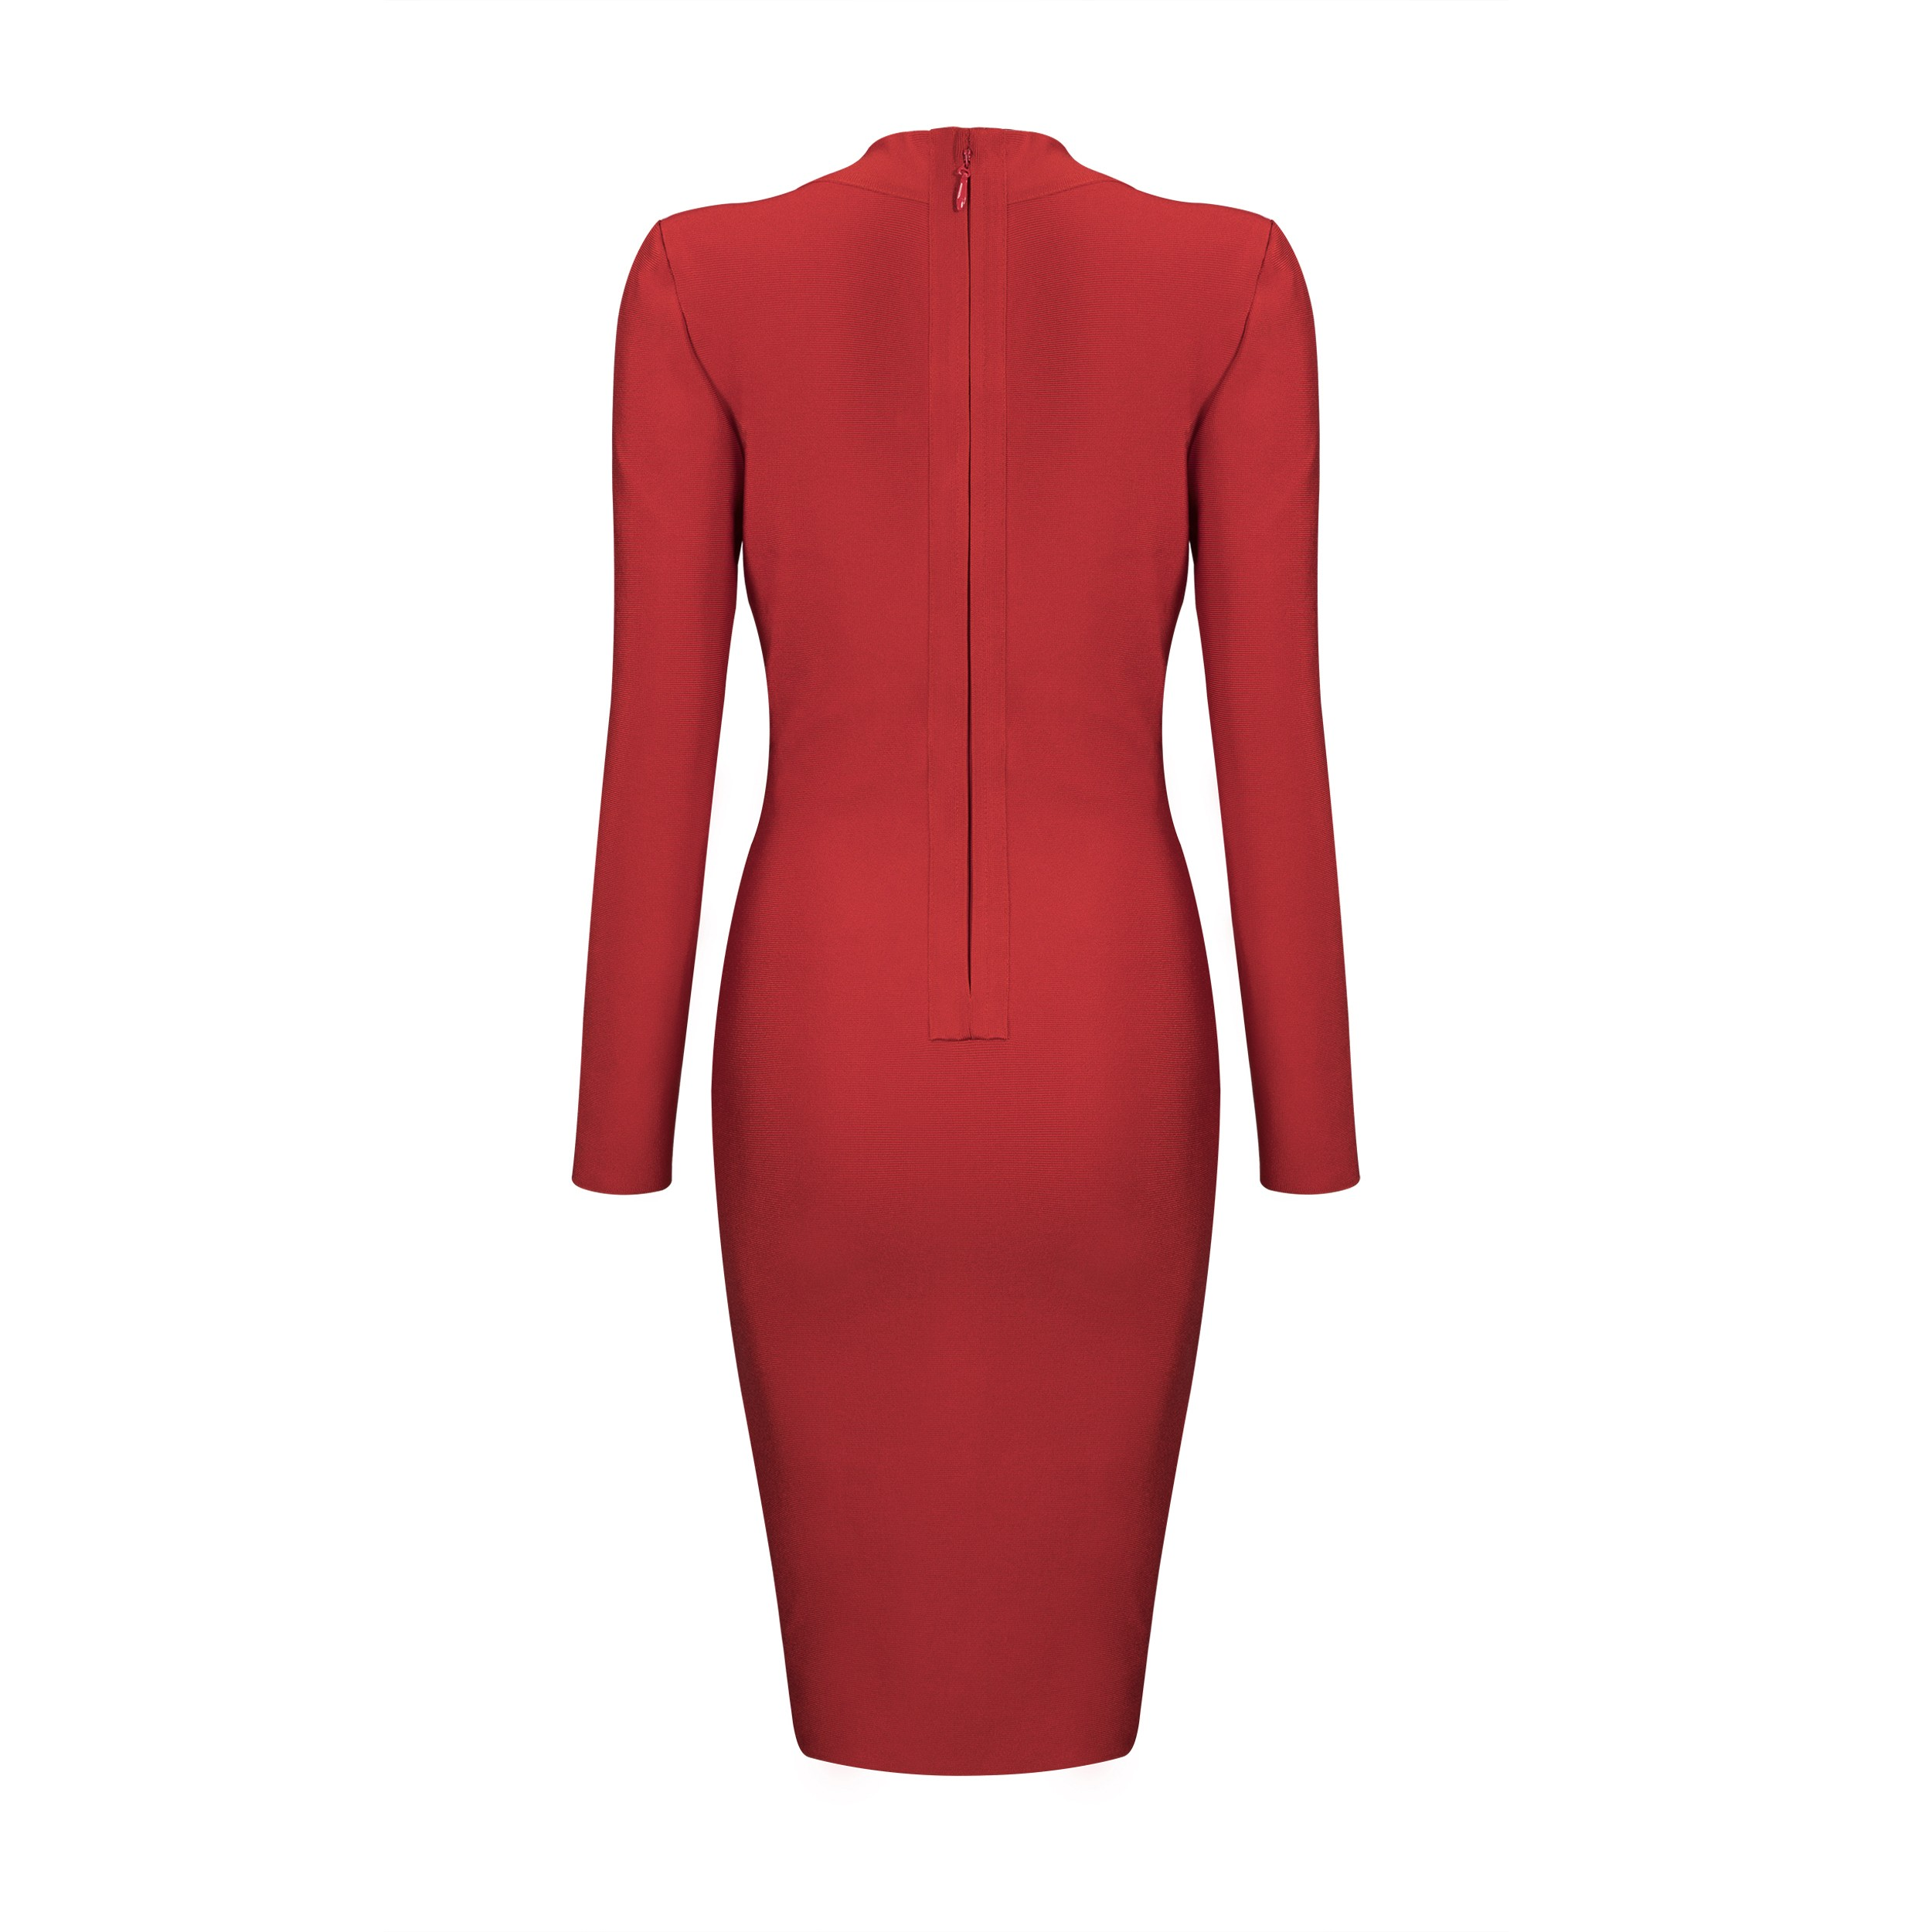 Red V Neck Long Sleeve Mini Sexy Bandage Dress HB4450-Red